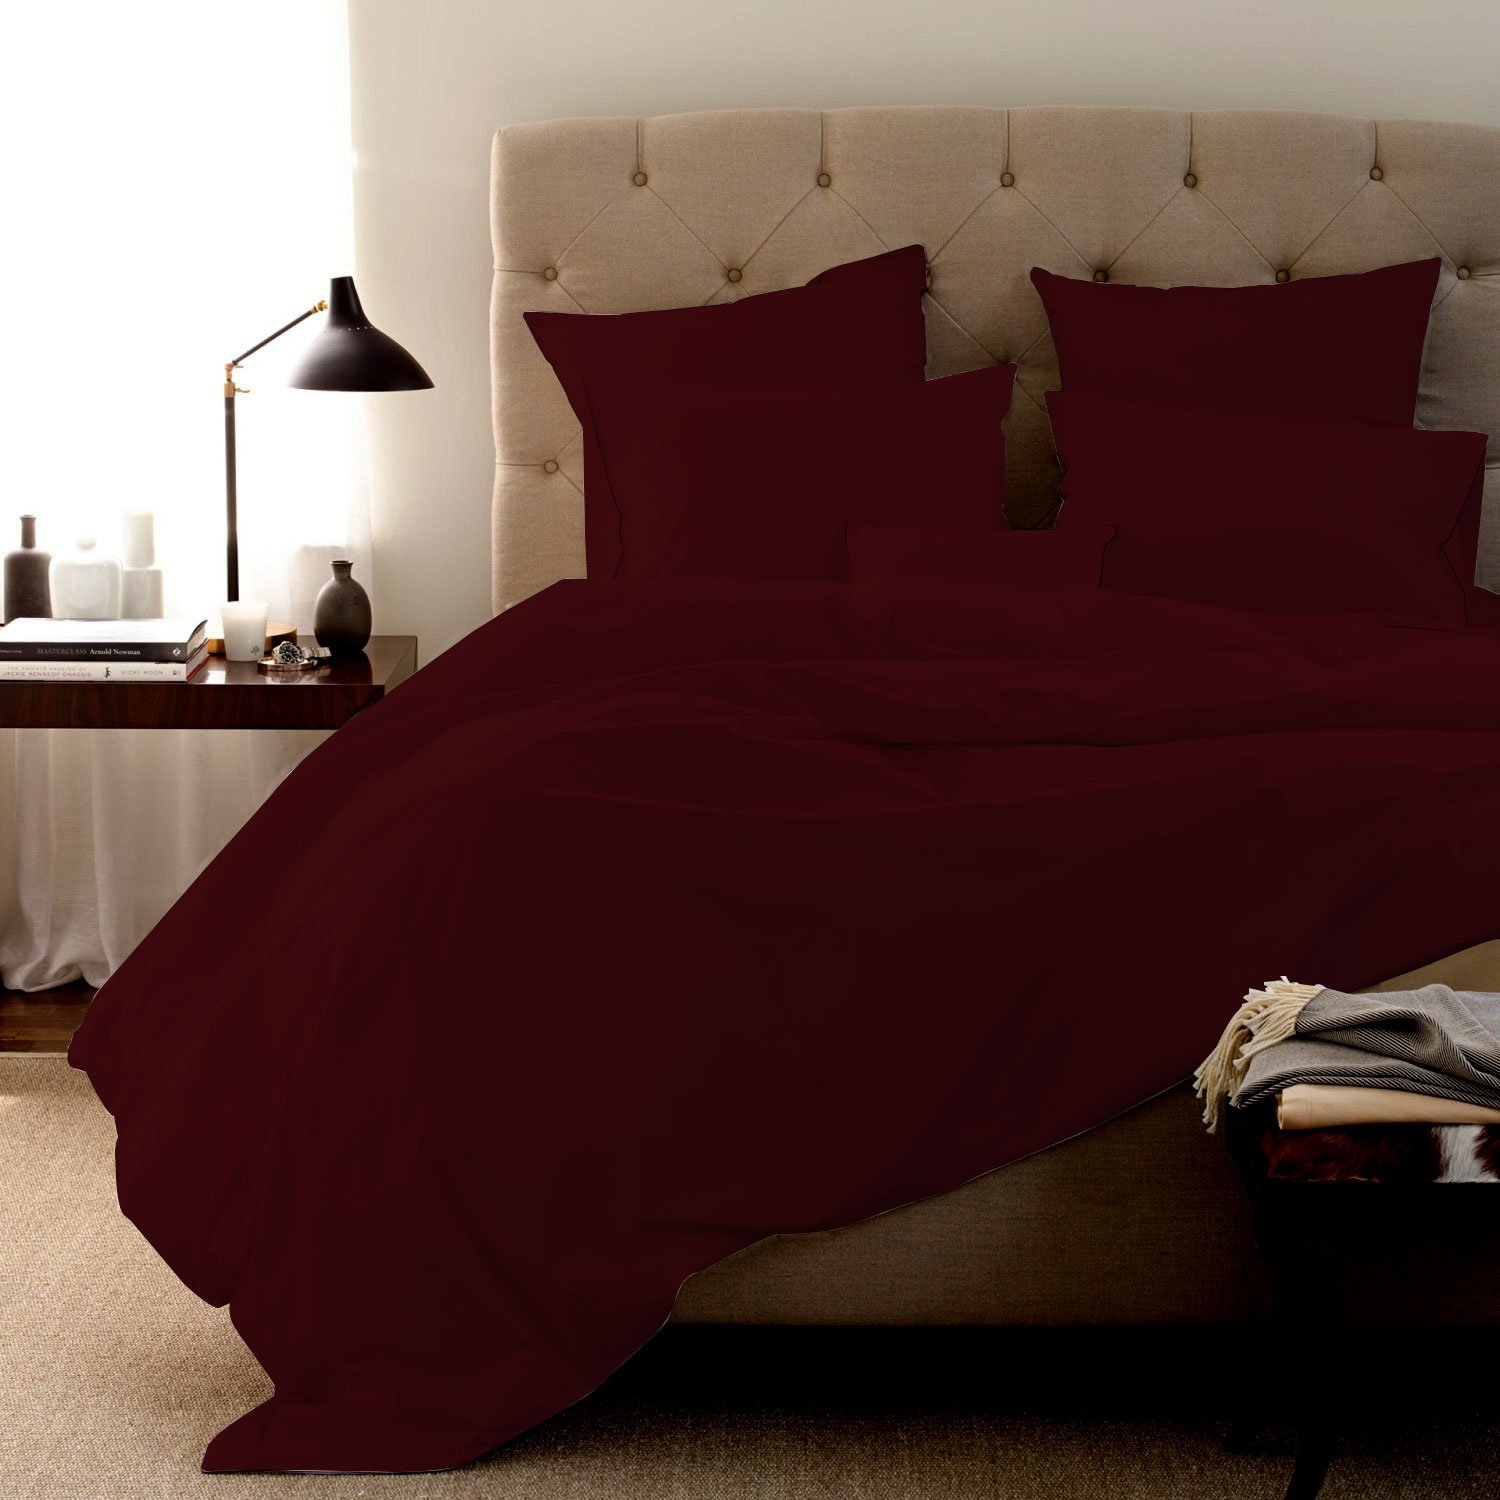 """New York Mercado Luxurious and breathable Super Soft PIMA cotton 6 PC sheet set 800 TC, Italian finish Bed sheet fits upto 21"""" deep pocket with extra 4 pillowcases King, Burgundy"""